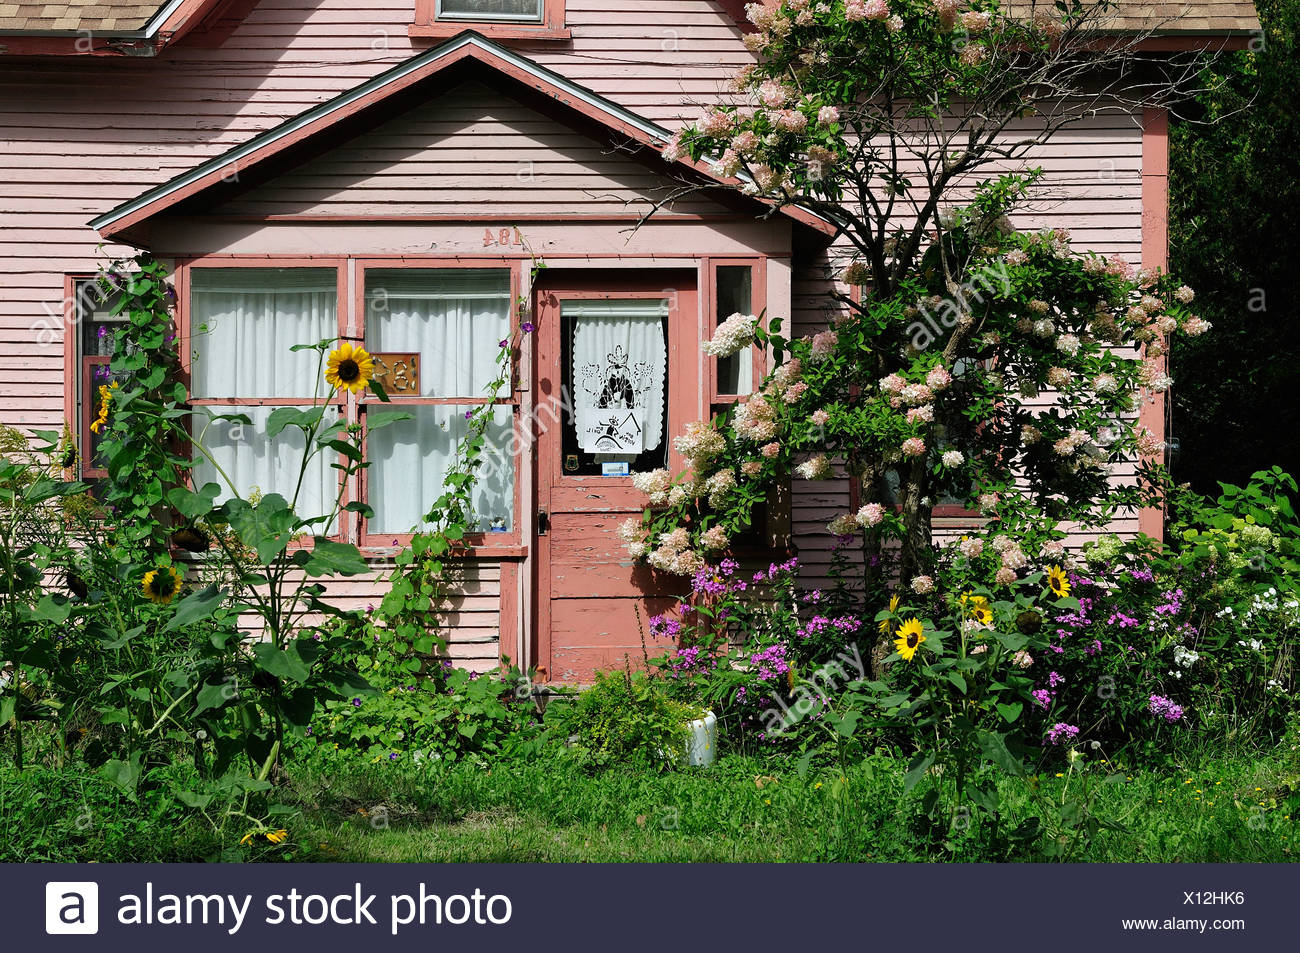 Canada, Garden, Quebec, Stanbridge East, faded, flowers, home, horizontal, house, pink, summer, sun flower, sunny, vines - Stock Image